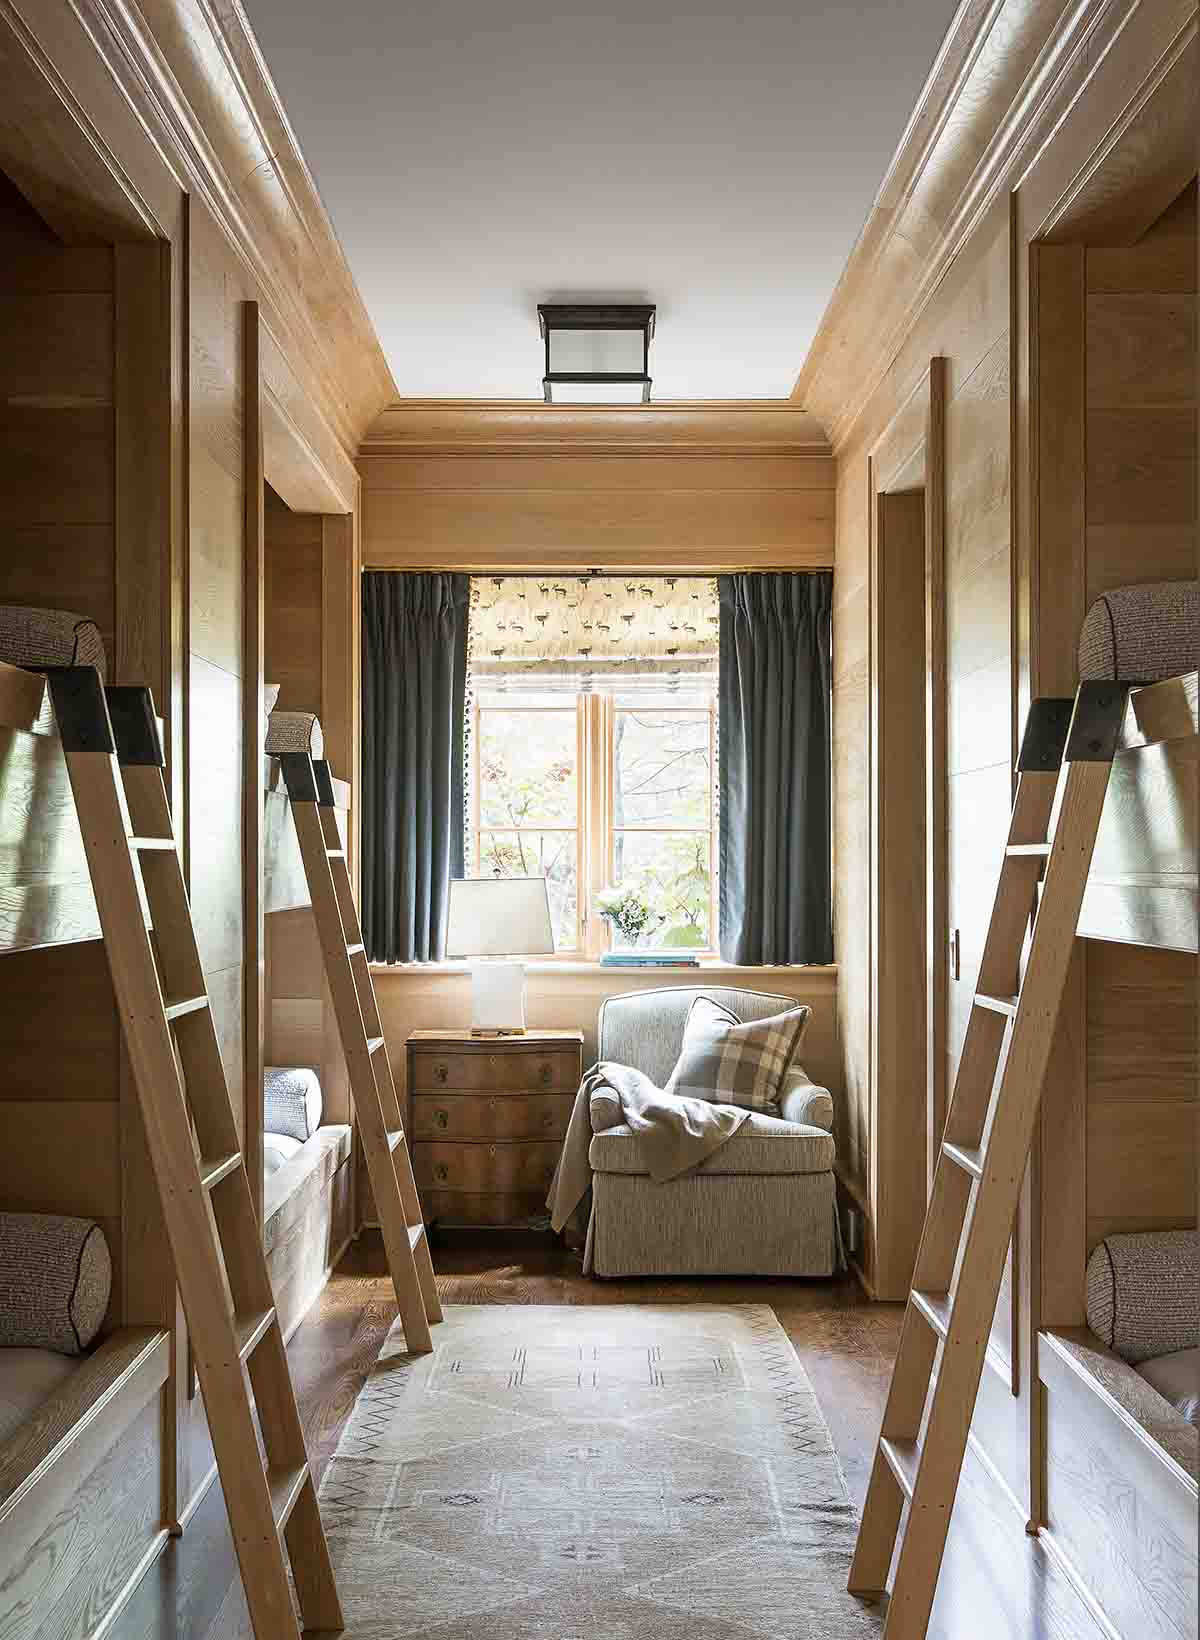 Bunk room -  Blackberry Farm Smoky Mountain Home - R.Higgins Interiors Design